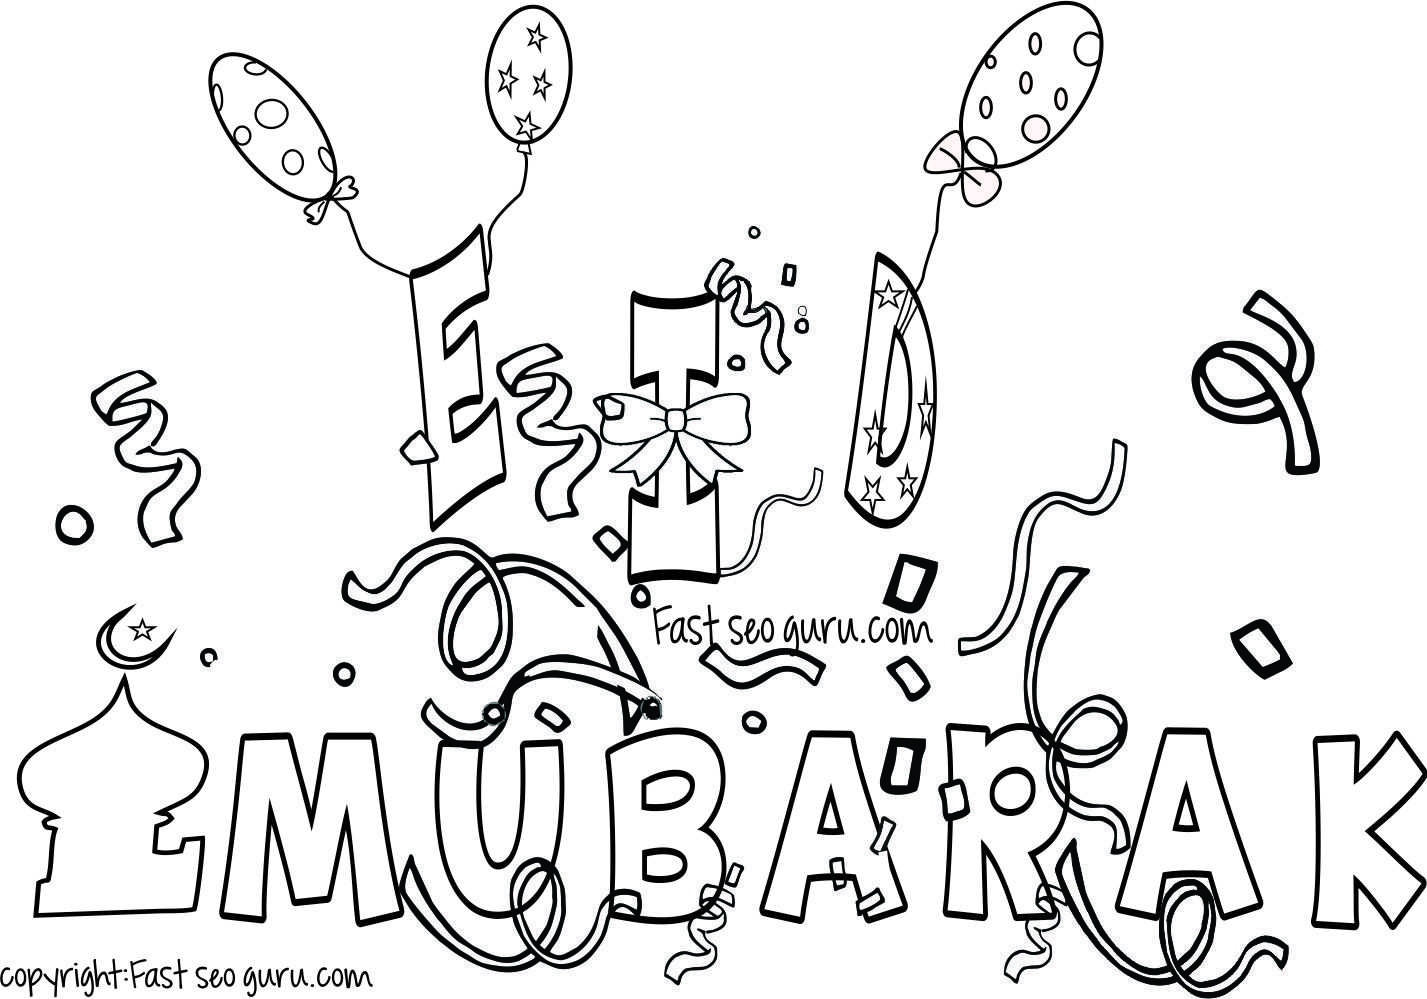 Eid Mubarak Coloring Pages For Kids With Images Kids Printable